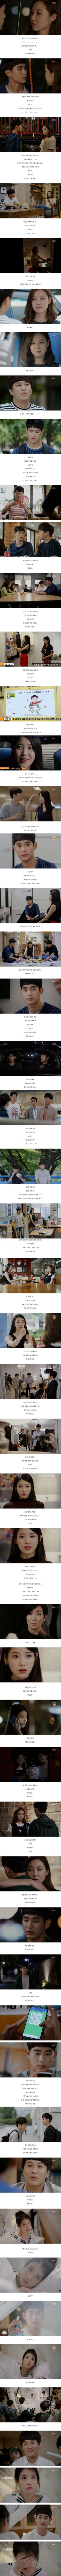 [Spoiler] Added final episodes 11 and 12 captures for the Korean drama 'Producers' @ HanCinema :: The Korean Movie and Drama Database Cha Tae Hyun, Kim Jong Kook, Gong Hyo Jin, Her Music, Korean Drama, Finals, Ads, Movie, Film